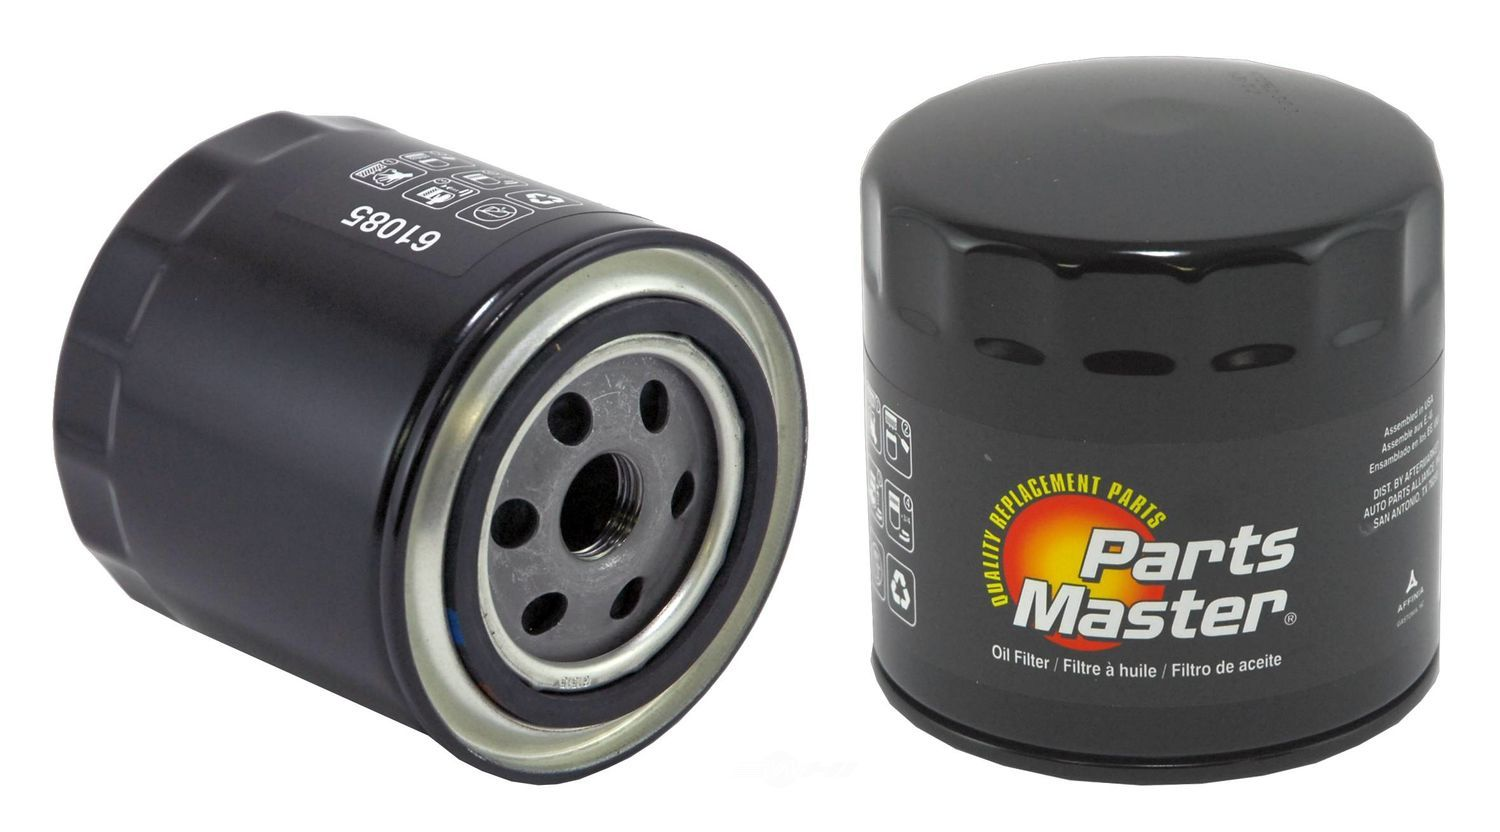 PARTS MASTER/WIX - Engine Oil Filter - P91 61085